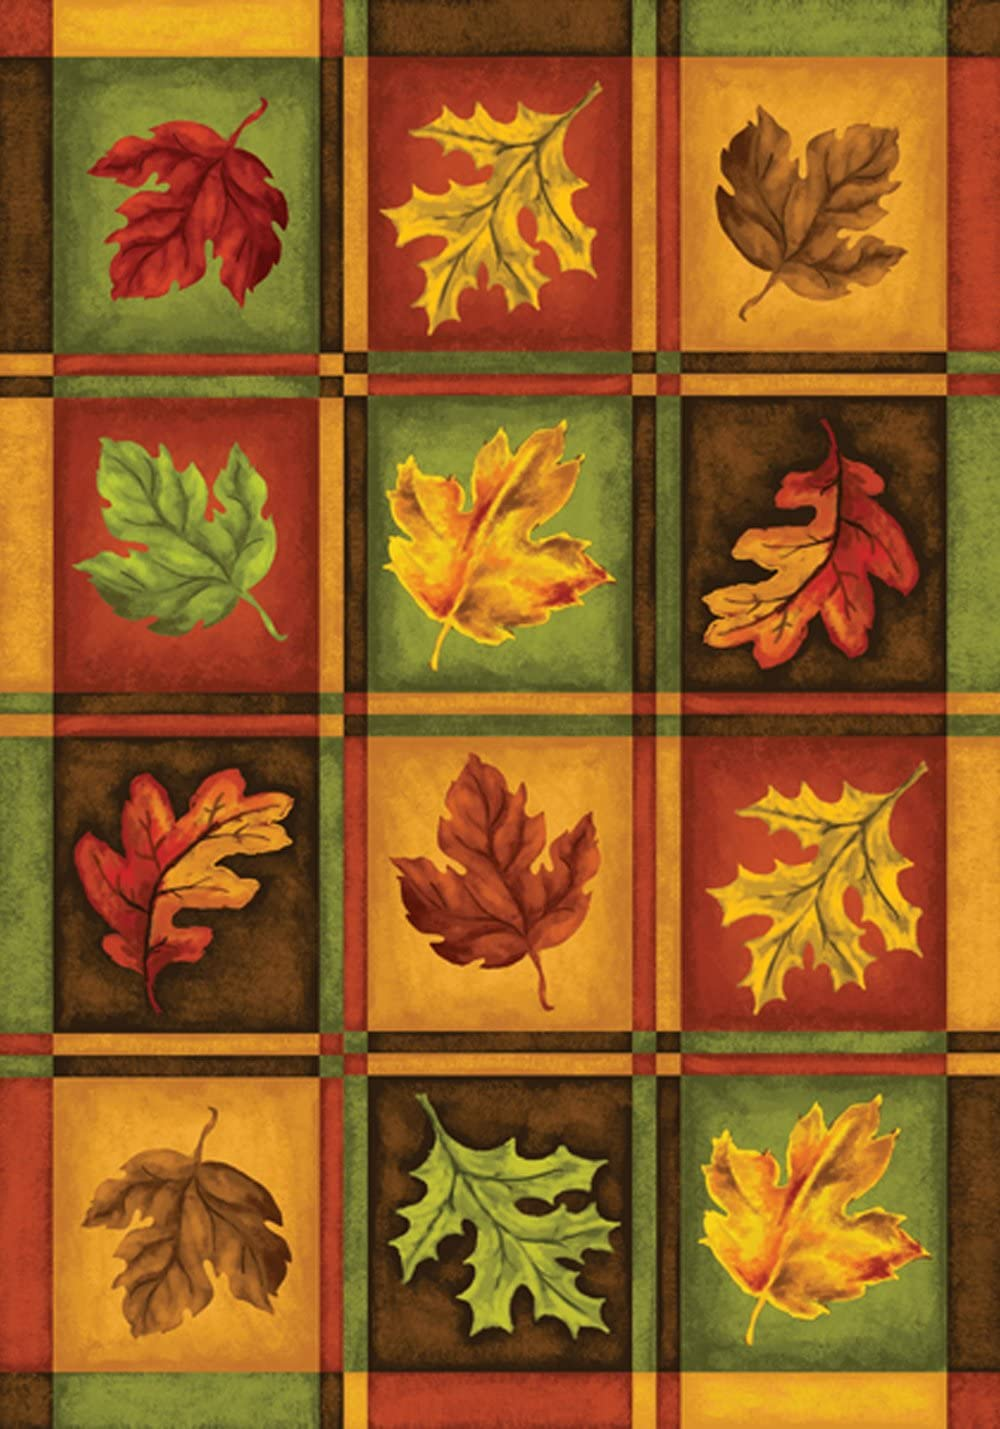 Toland Home Garden Fall Leaves 12.5 x 18 Inch Decorative Plaid Autumn Leaf Garden Flag